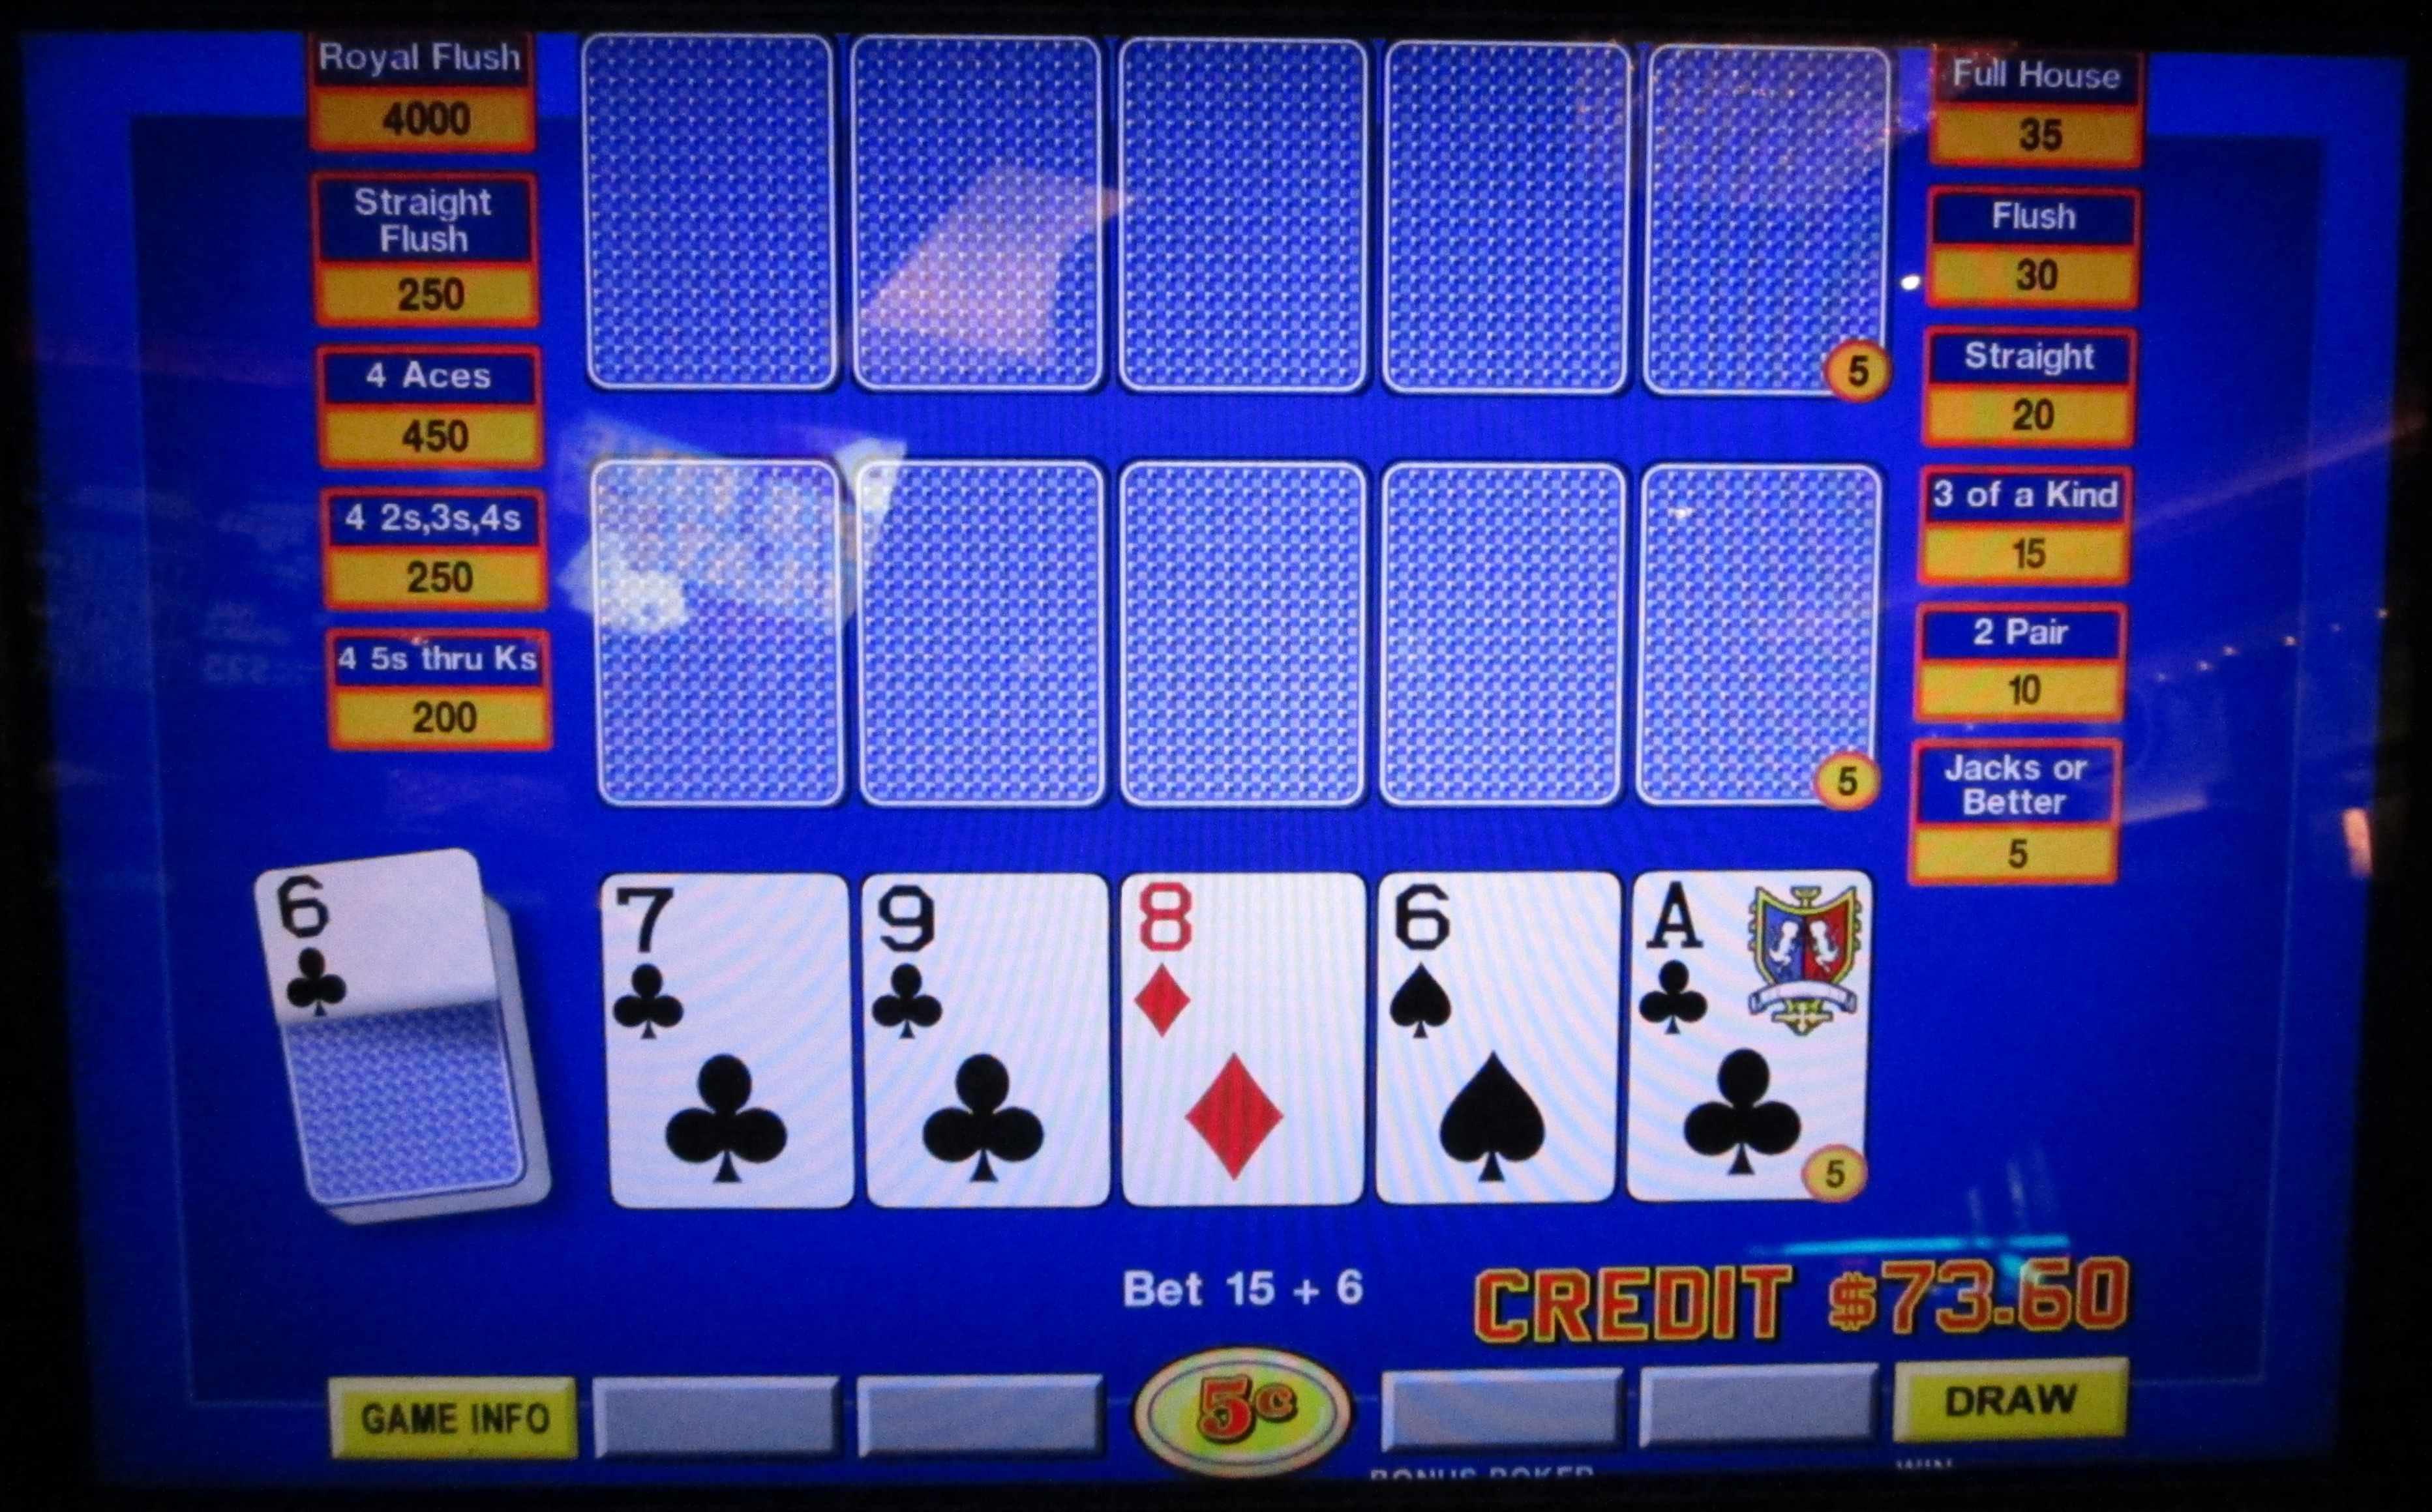 5 card draw poker odds chart outside the lines